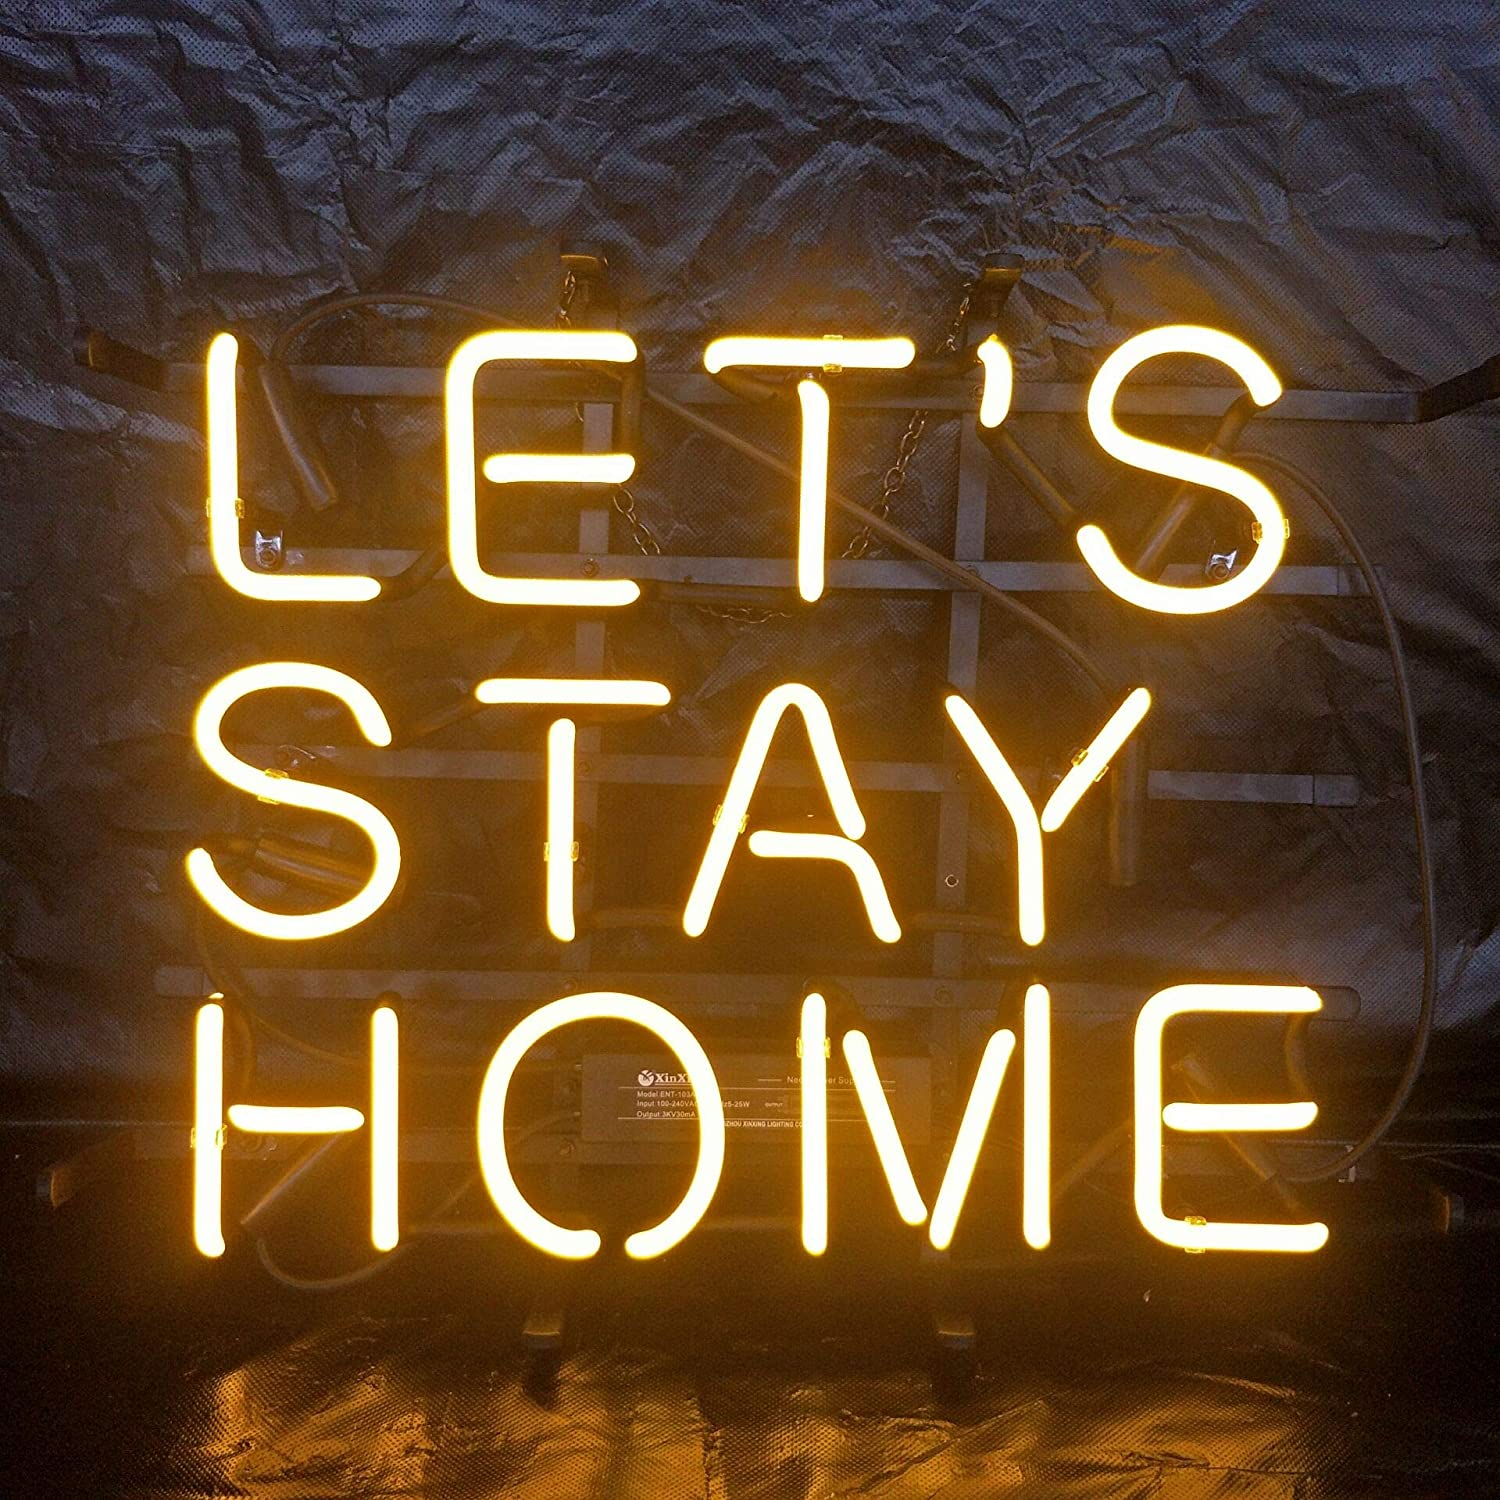 Let's Stay Home Acrylic Board Neon Sign 42cm32cm Real Glass Neon Sign Light for Beer Bar Pub Garage Room.